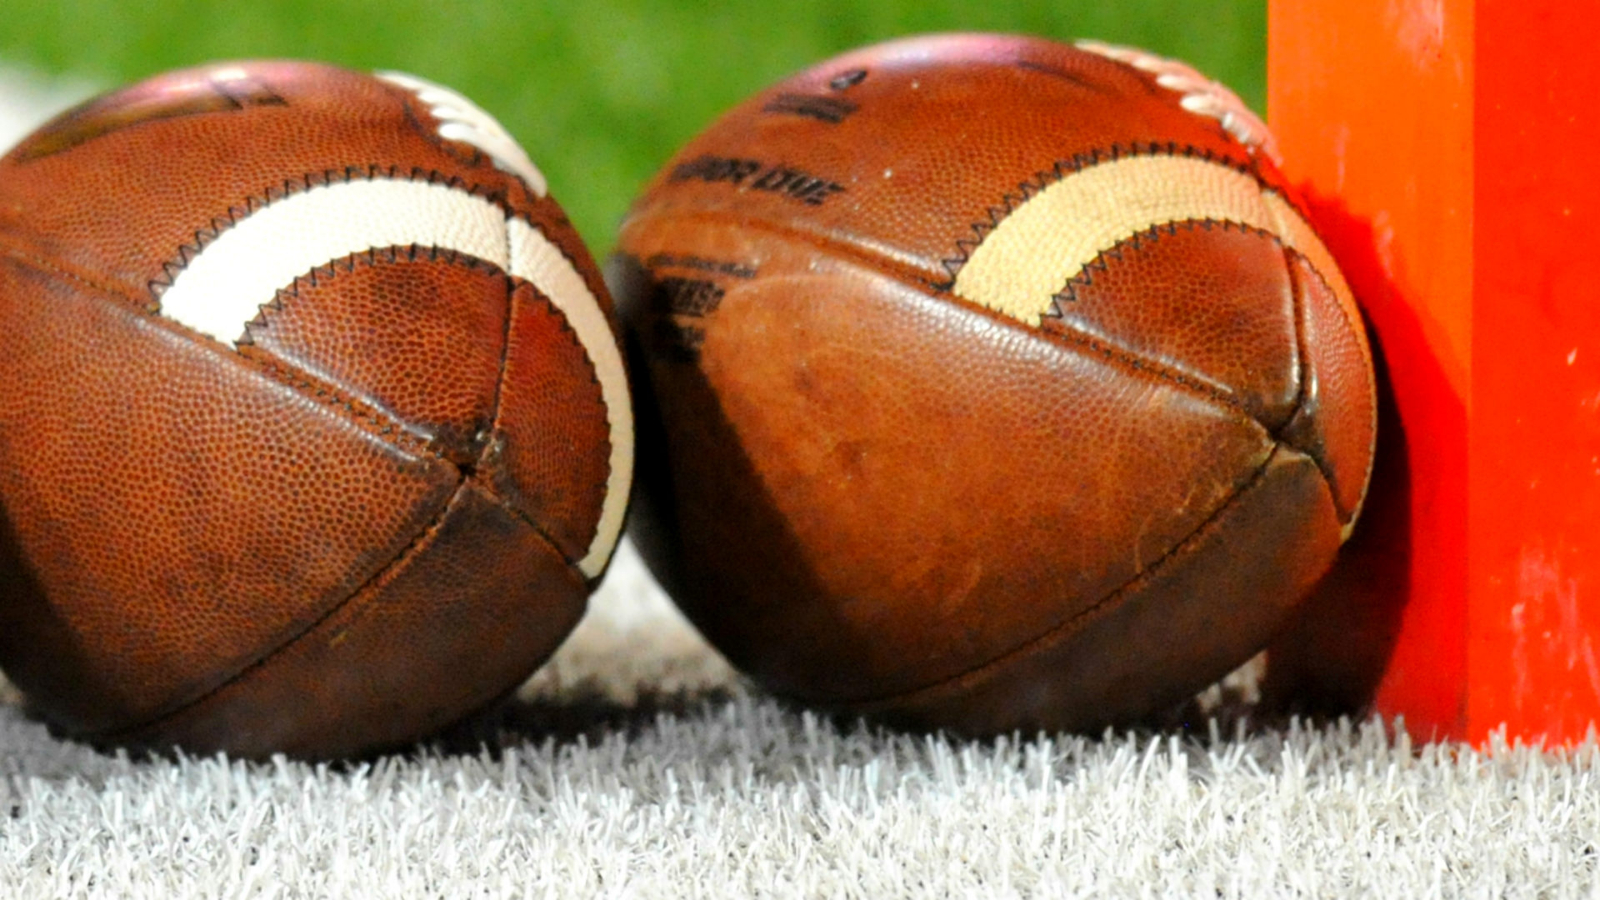 Coldwater football players earn All MAC Honors